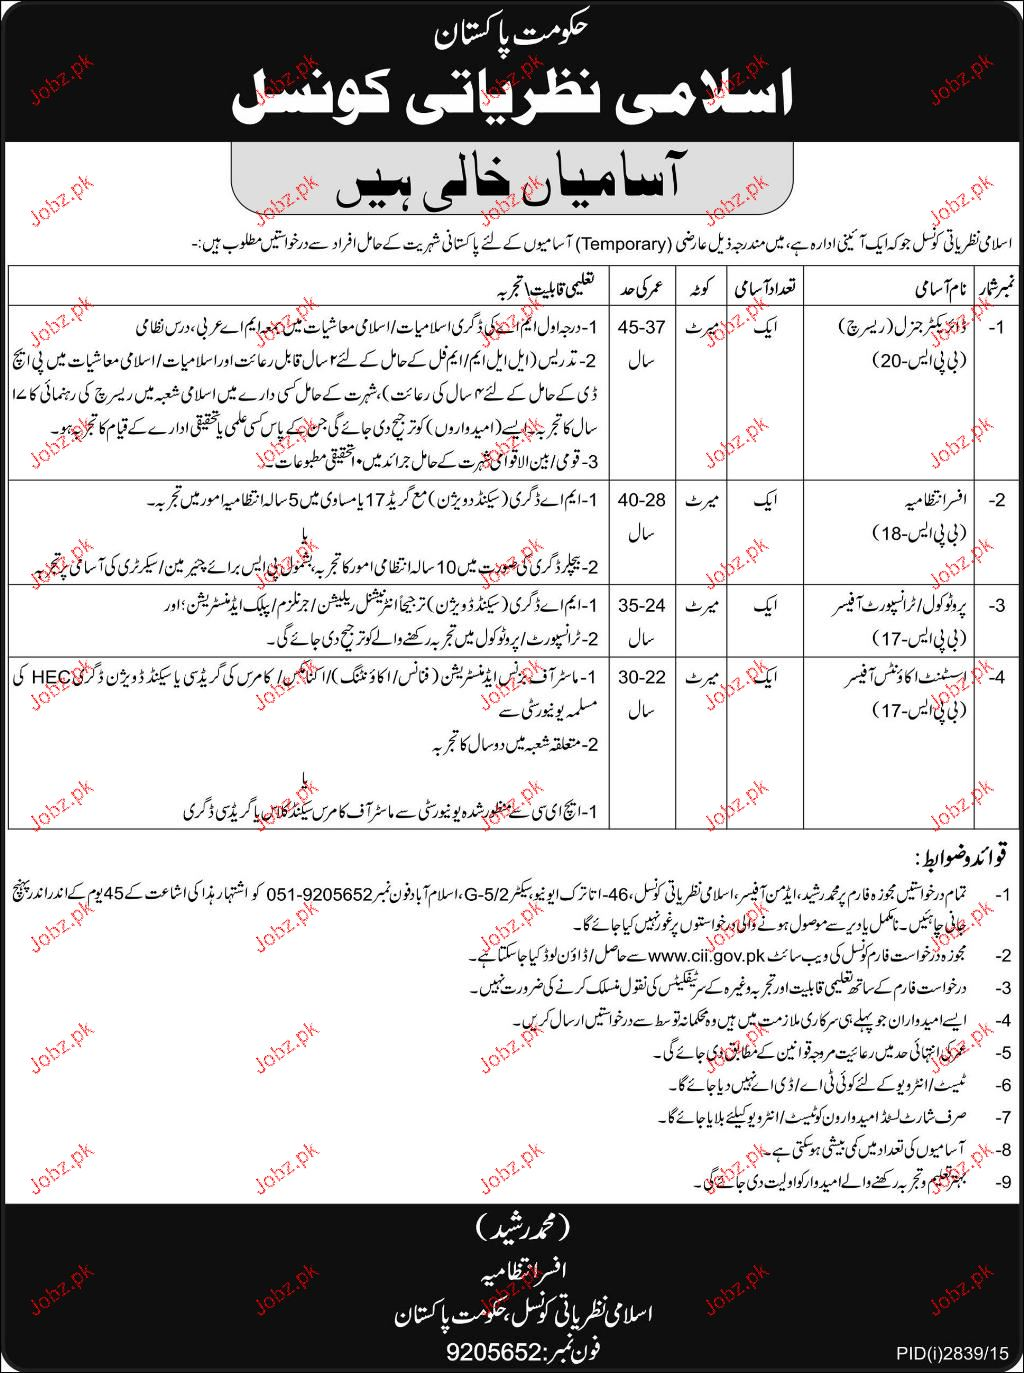 Director General, Admin officers Transport Officer Wanted